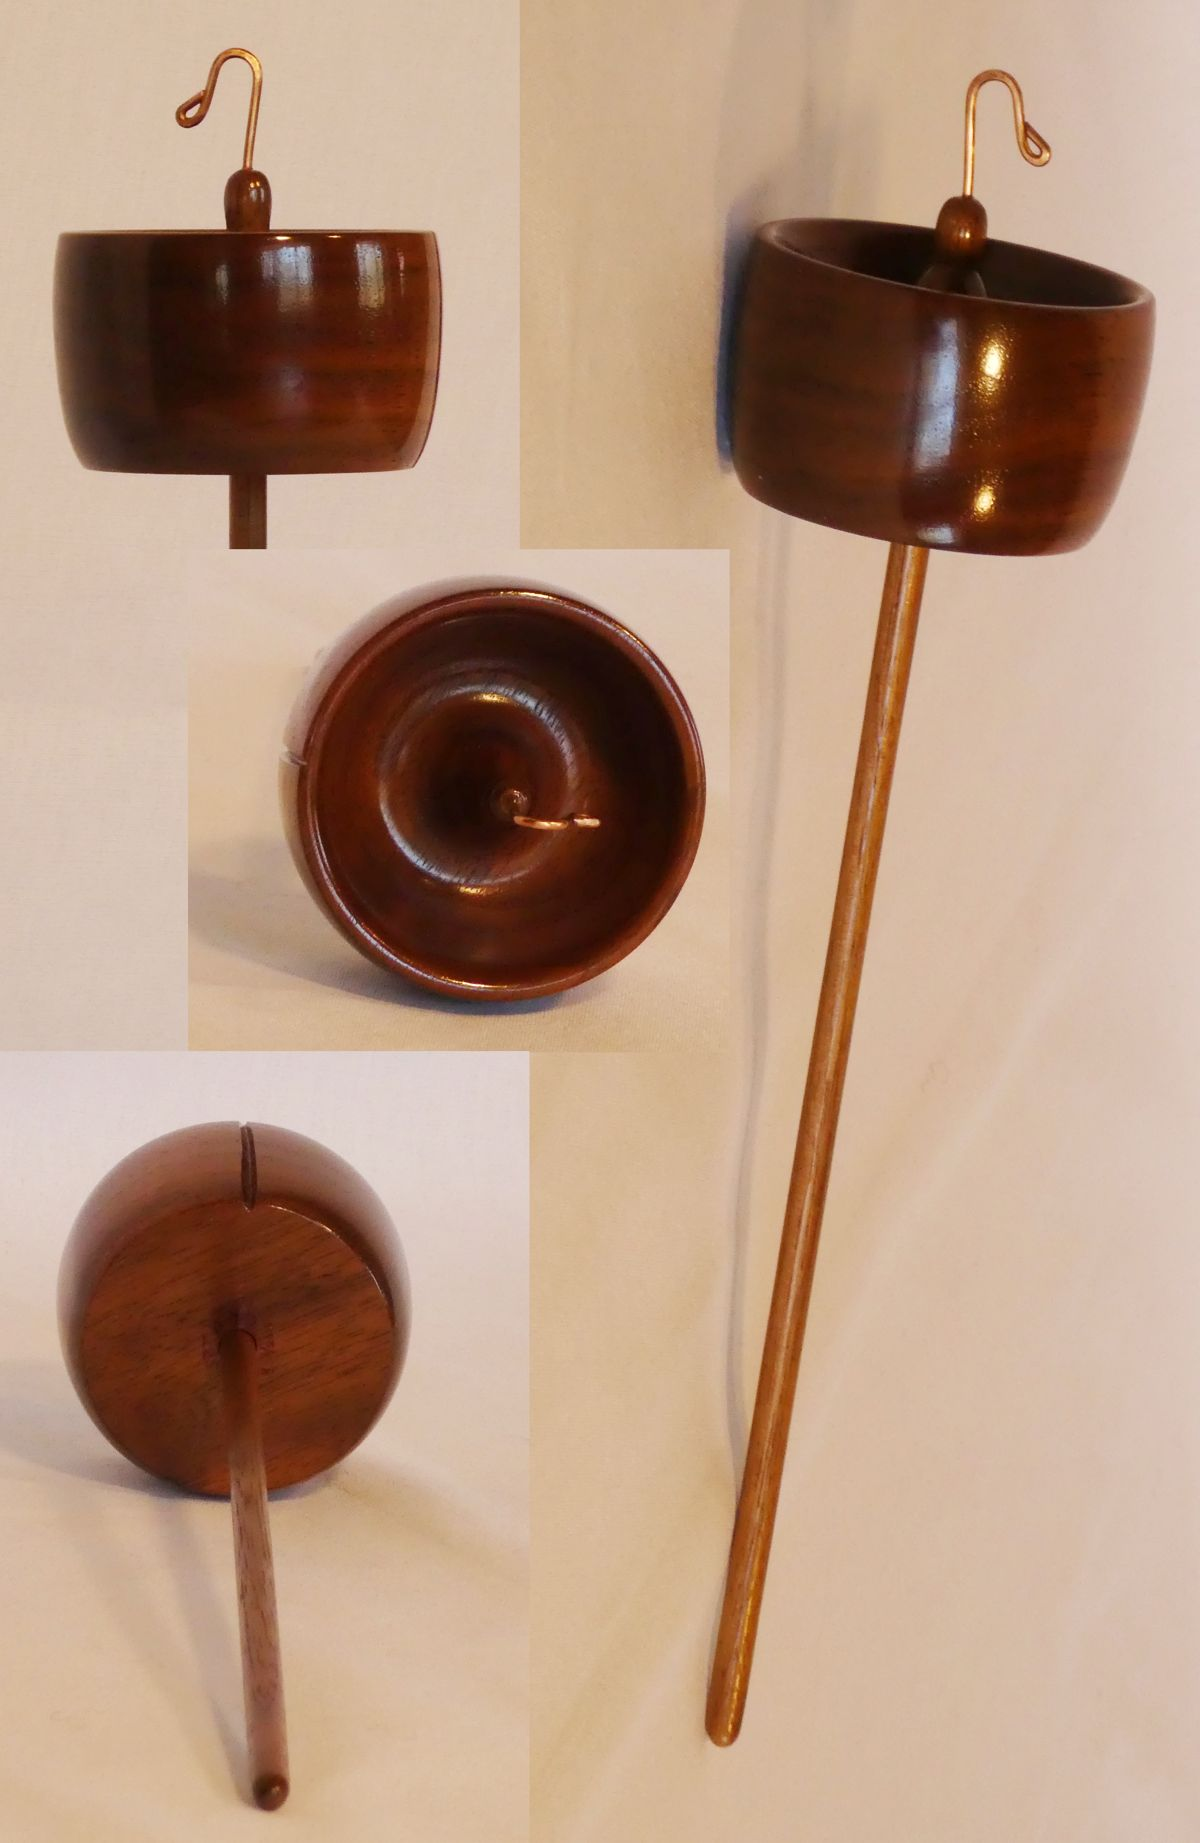 Top whorl drop spindle handmade by Cynthia D. Haney in her Virginia workshop from Walnut signed number 225.